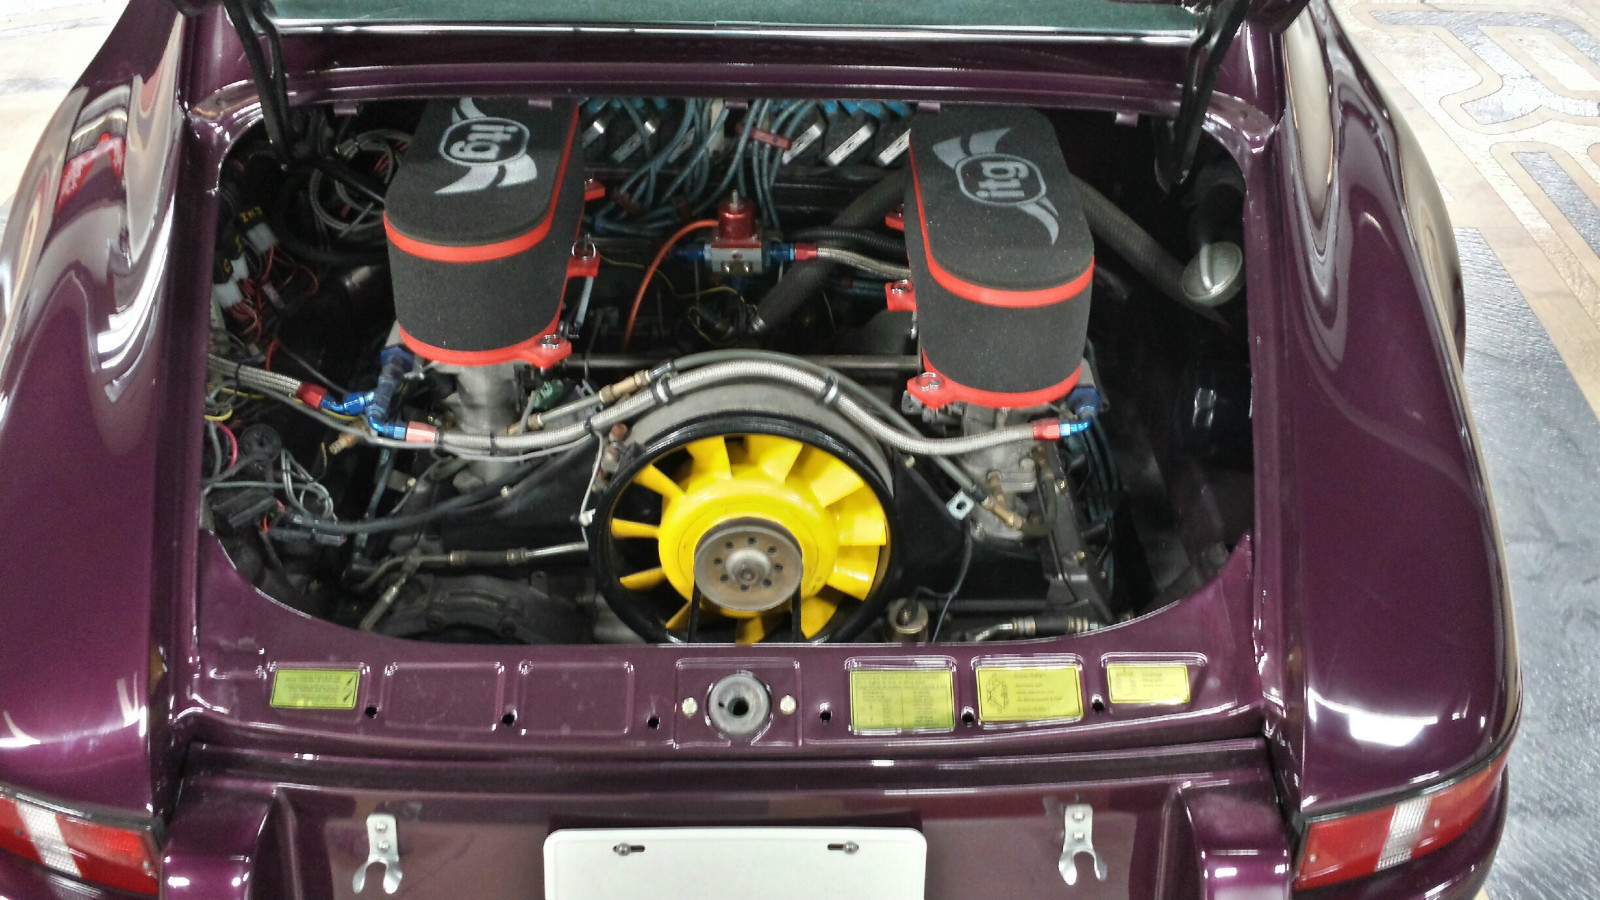 1977 Porsche 911 73 Rs Replica German Cars For Sale Blog Wiring Harness 1973 Model Engine 30 Liter Flat 6 Transmission 5 Speed Manual Mileage 79000 Mi Price Reserve Auction